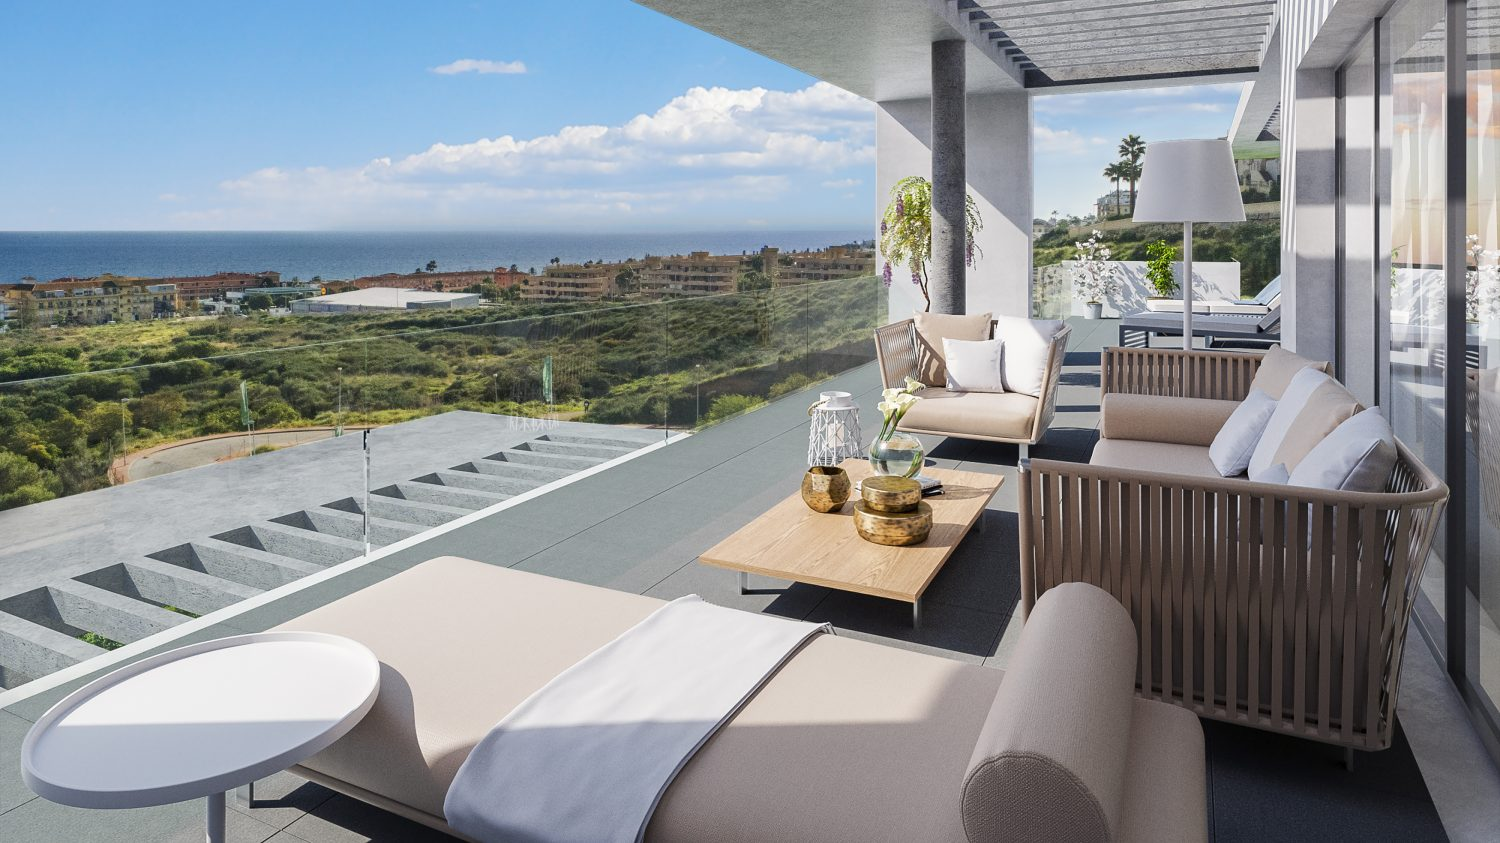 Luxurious apartments in the a residential complex situated in La Cala de Mijas